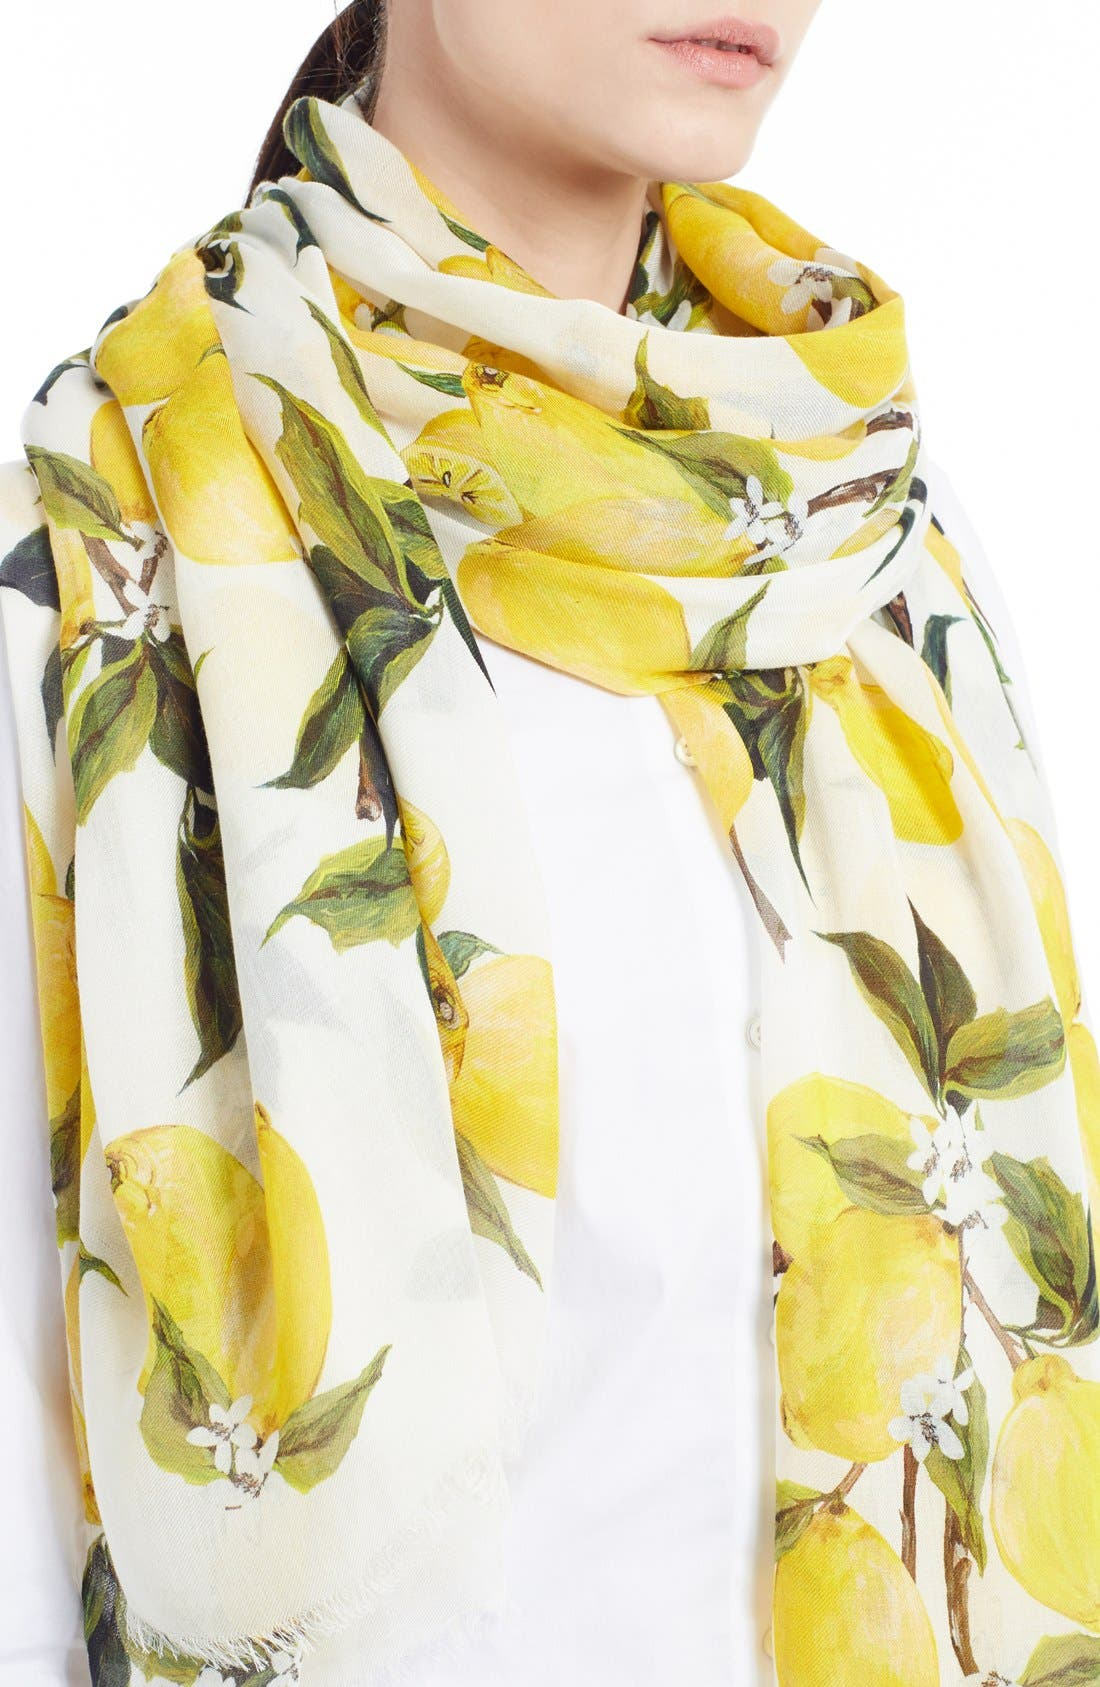 Alternate Image 1 Selected - Dolce&Gabbana Lemon Print Modal & Cashmere Scarf